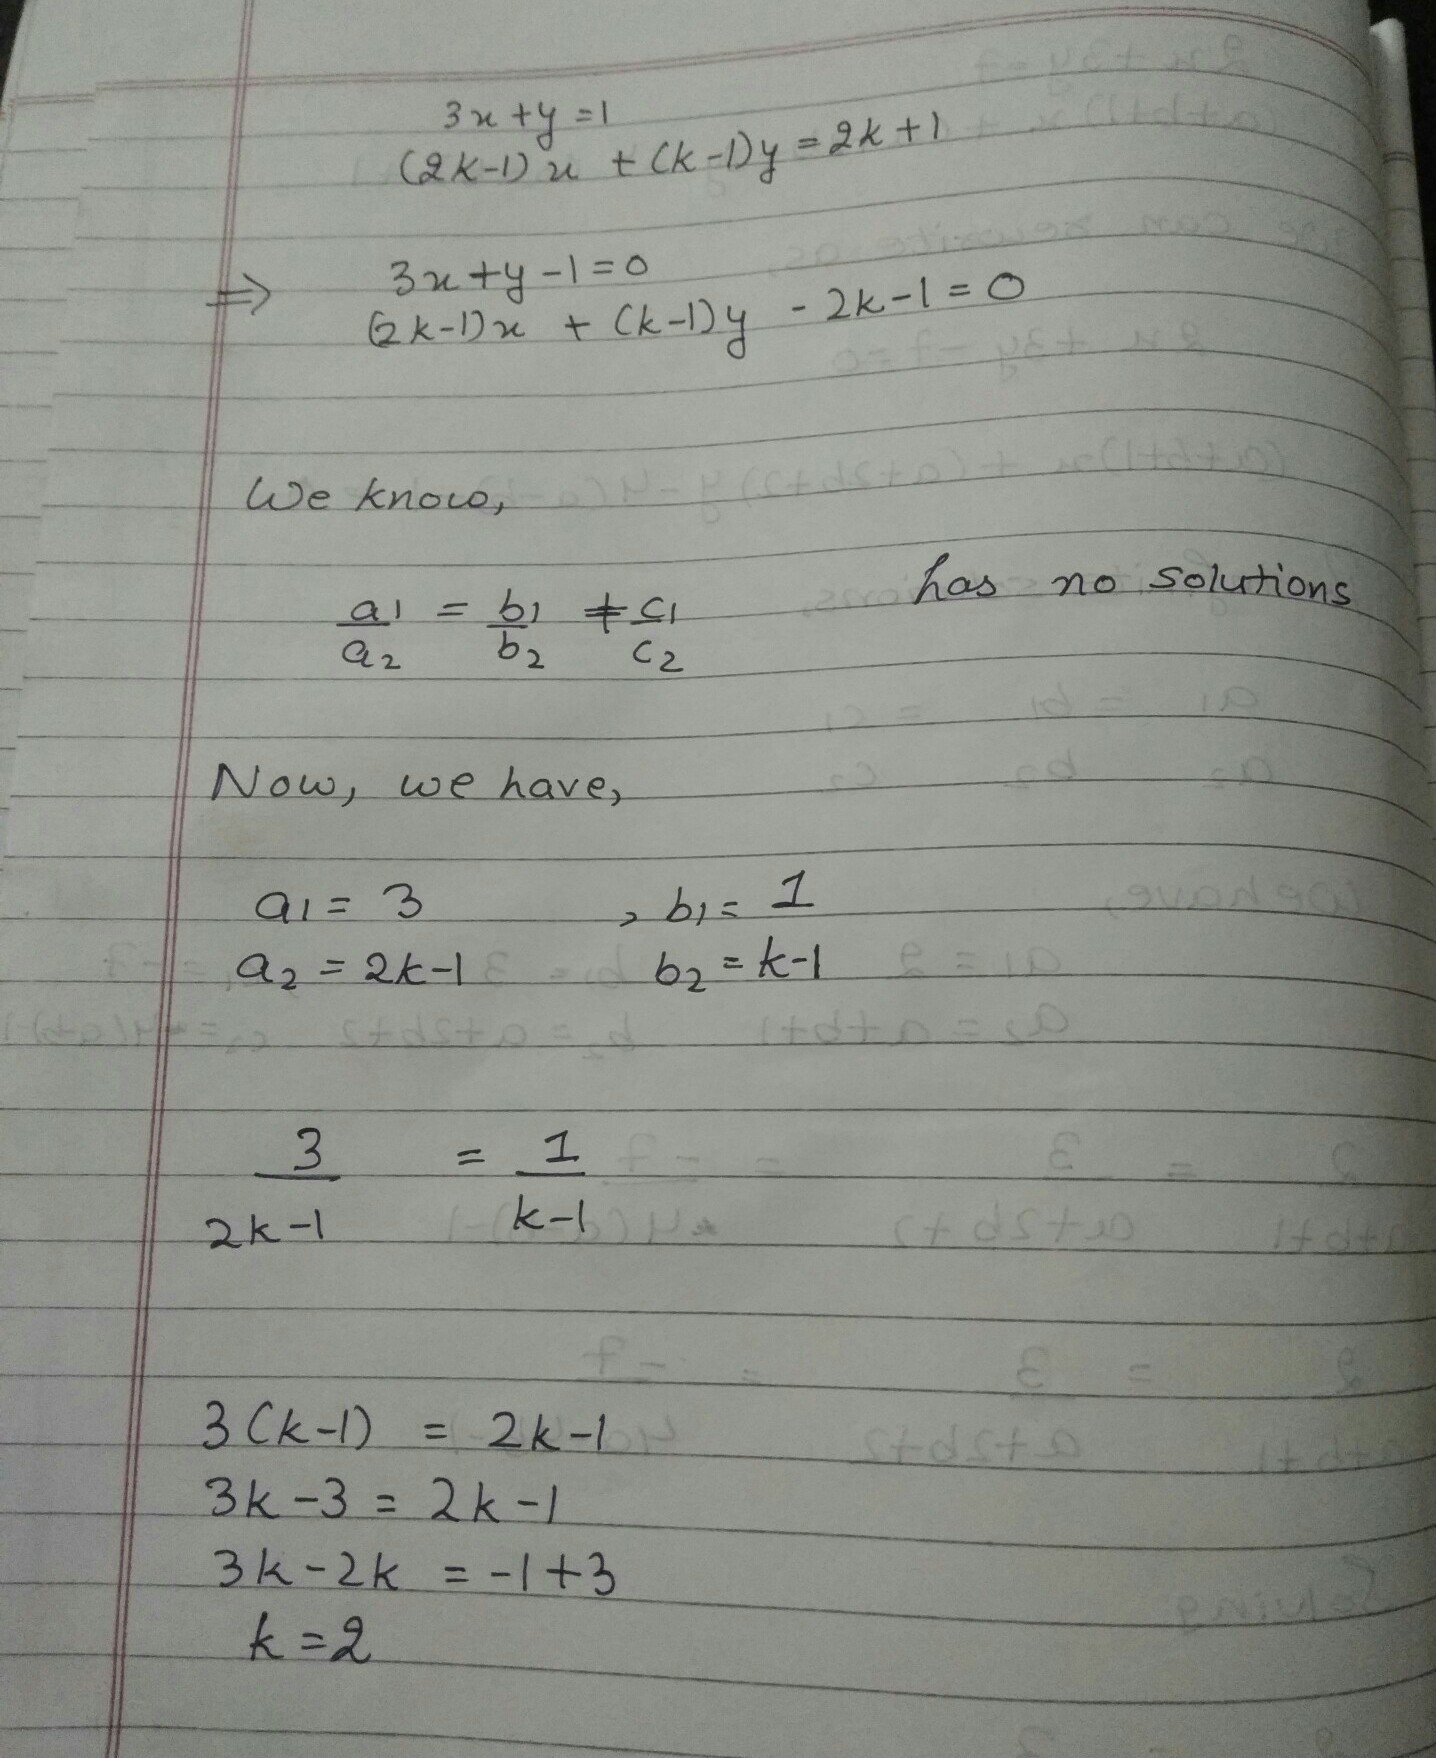 For Value Of K Will The Following Pair Of Linear Equations